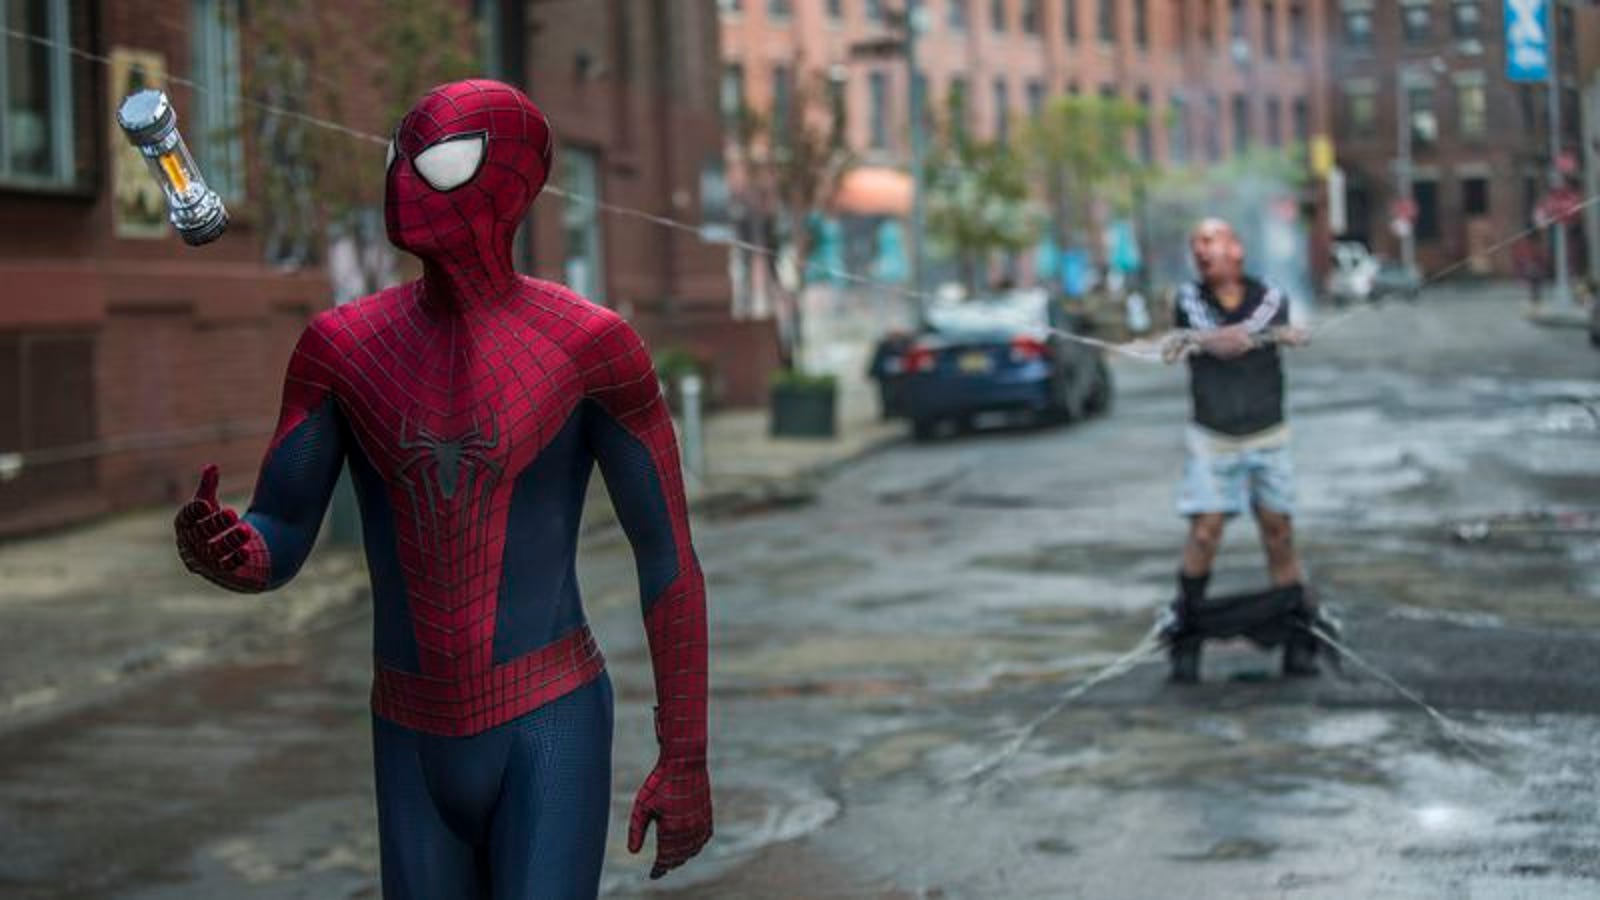 The Amazing Spider Man 2 Suffers From An Excess Of Plot Villains